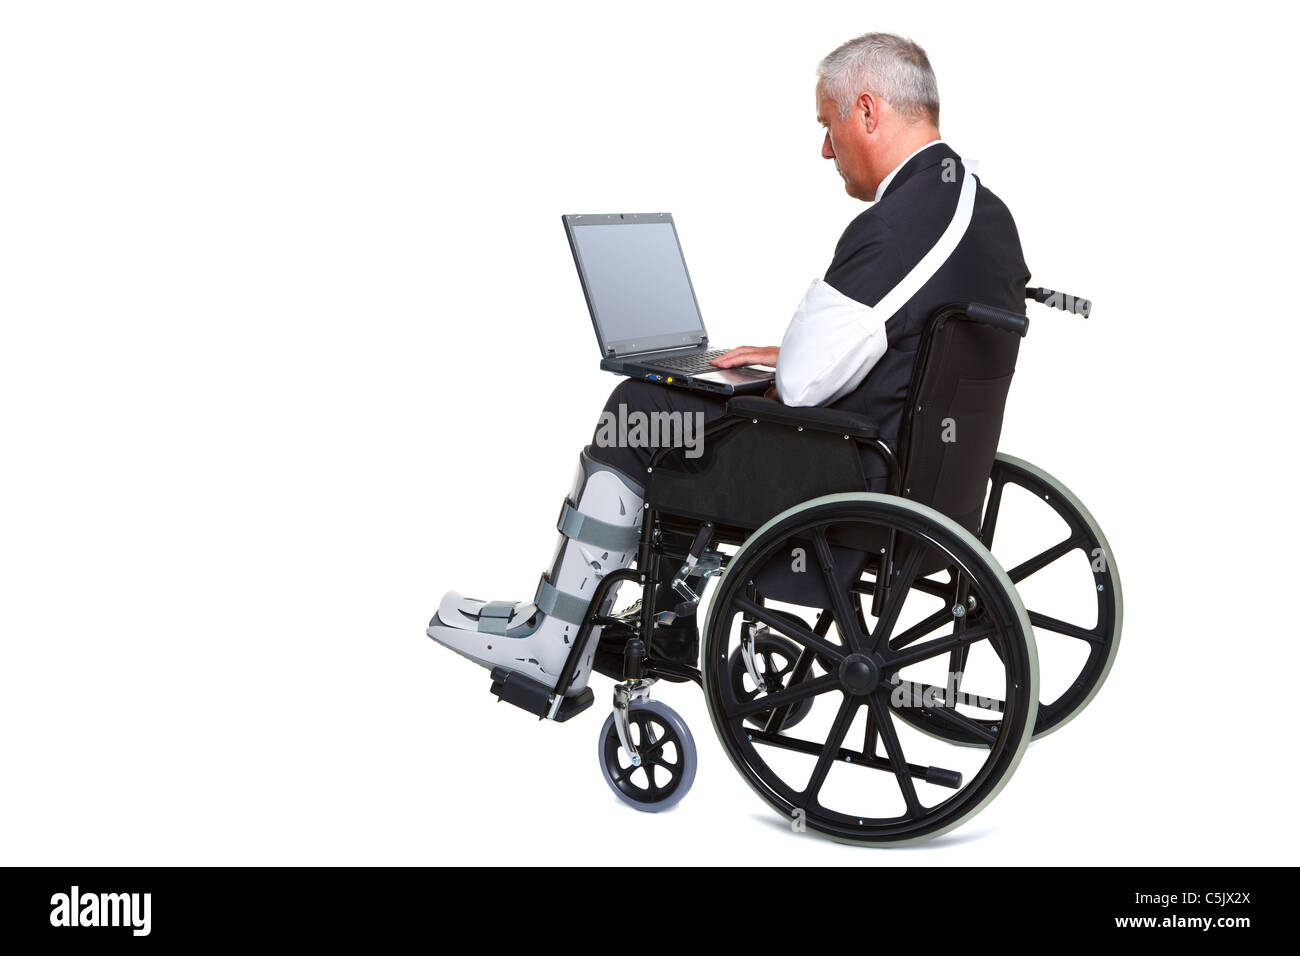 Photo of an injured businessman sitting in a wheelchair working on a laptop computer, isolated against a white background. - Stock Image